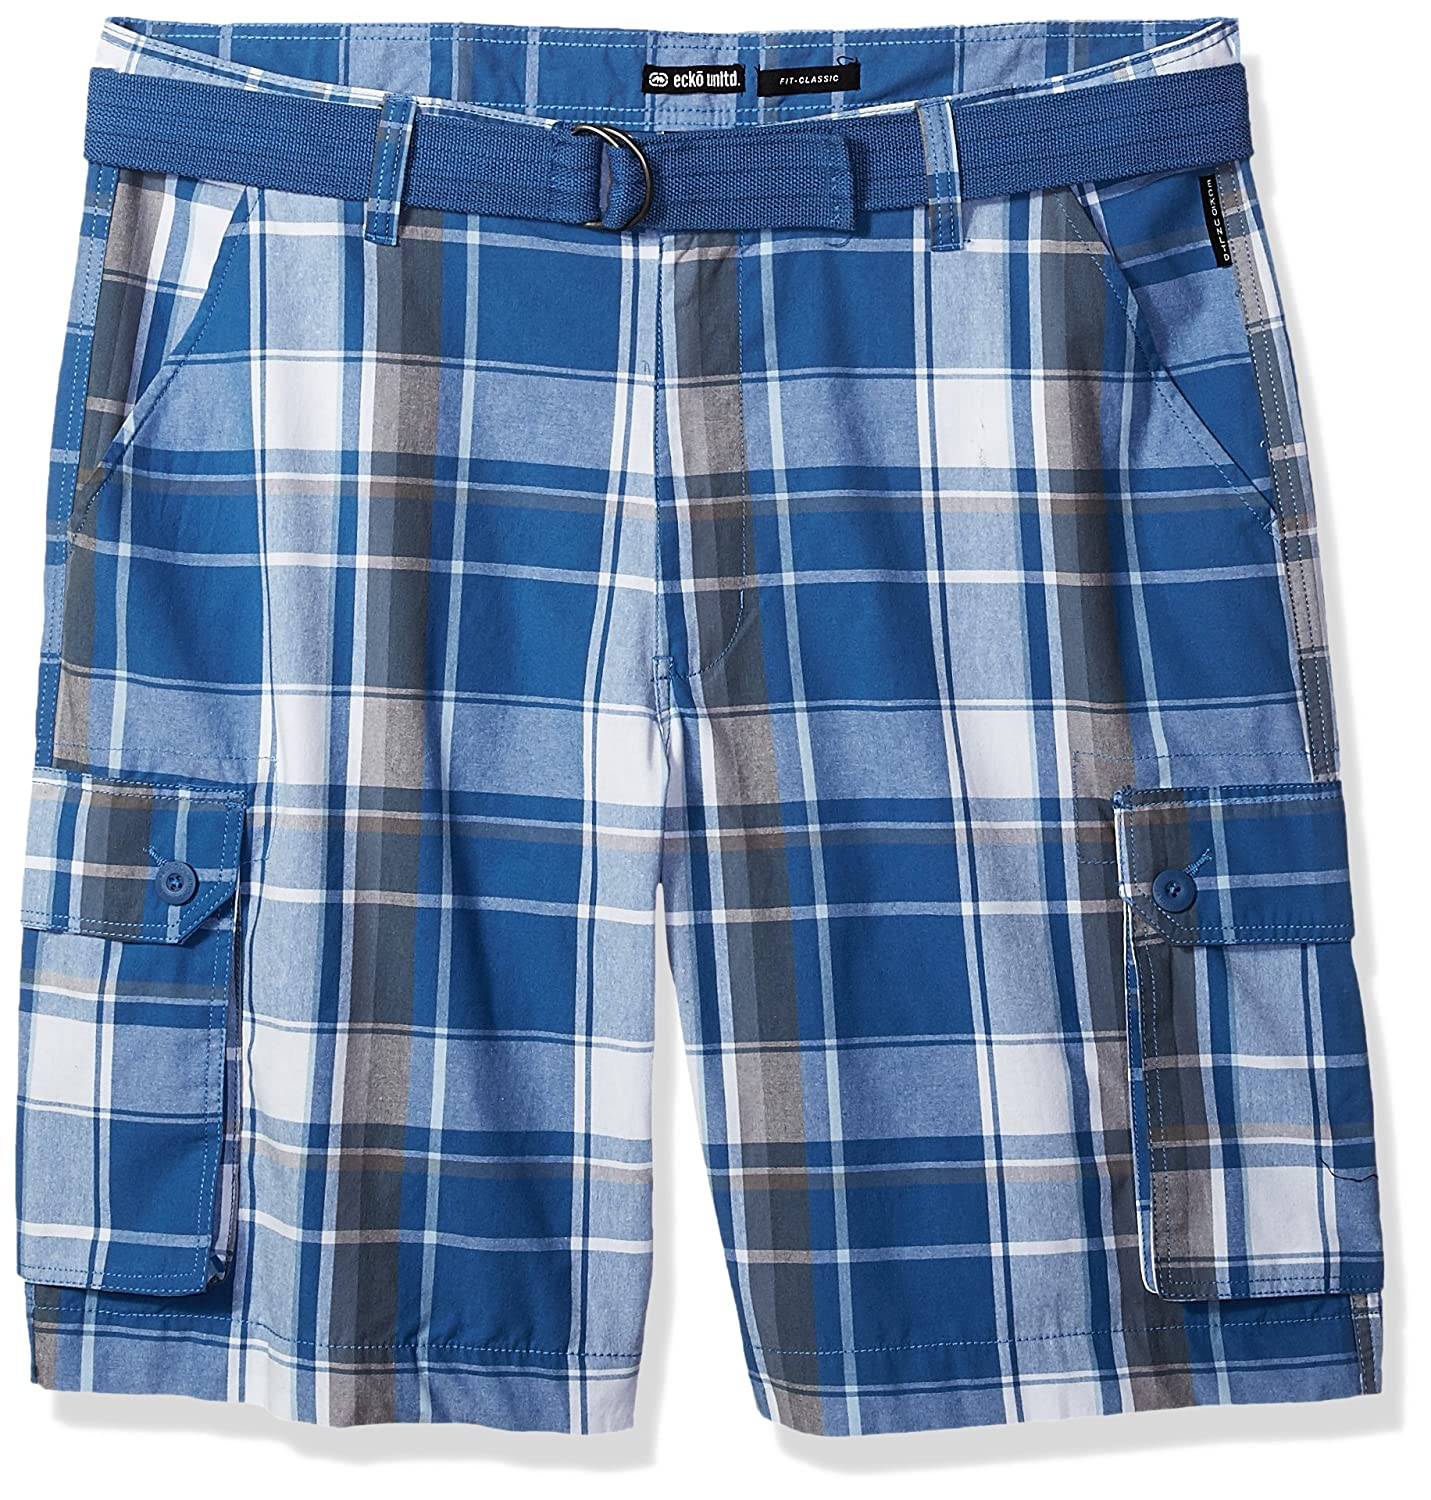 74b0dd2f0a Amazon.com: Ecko Unlimited Men's Belted Cargo Short: Clothing